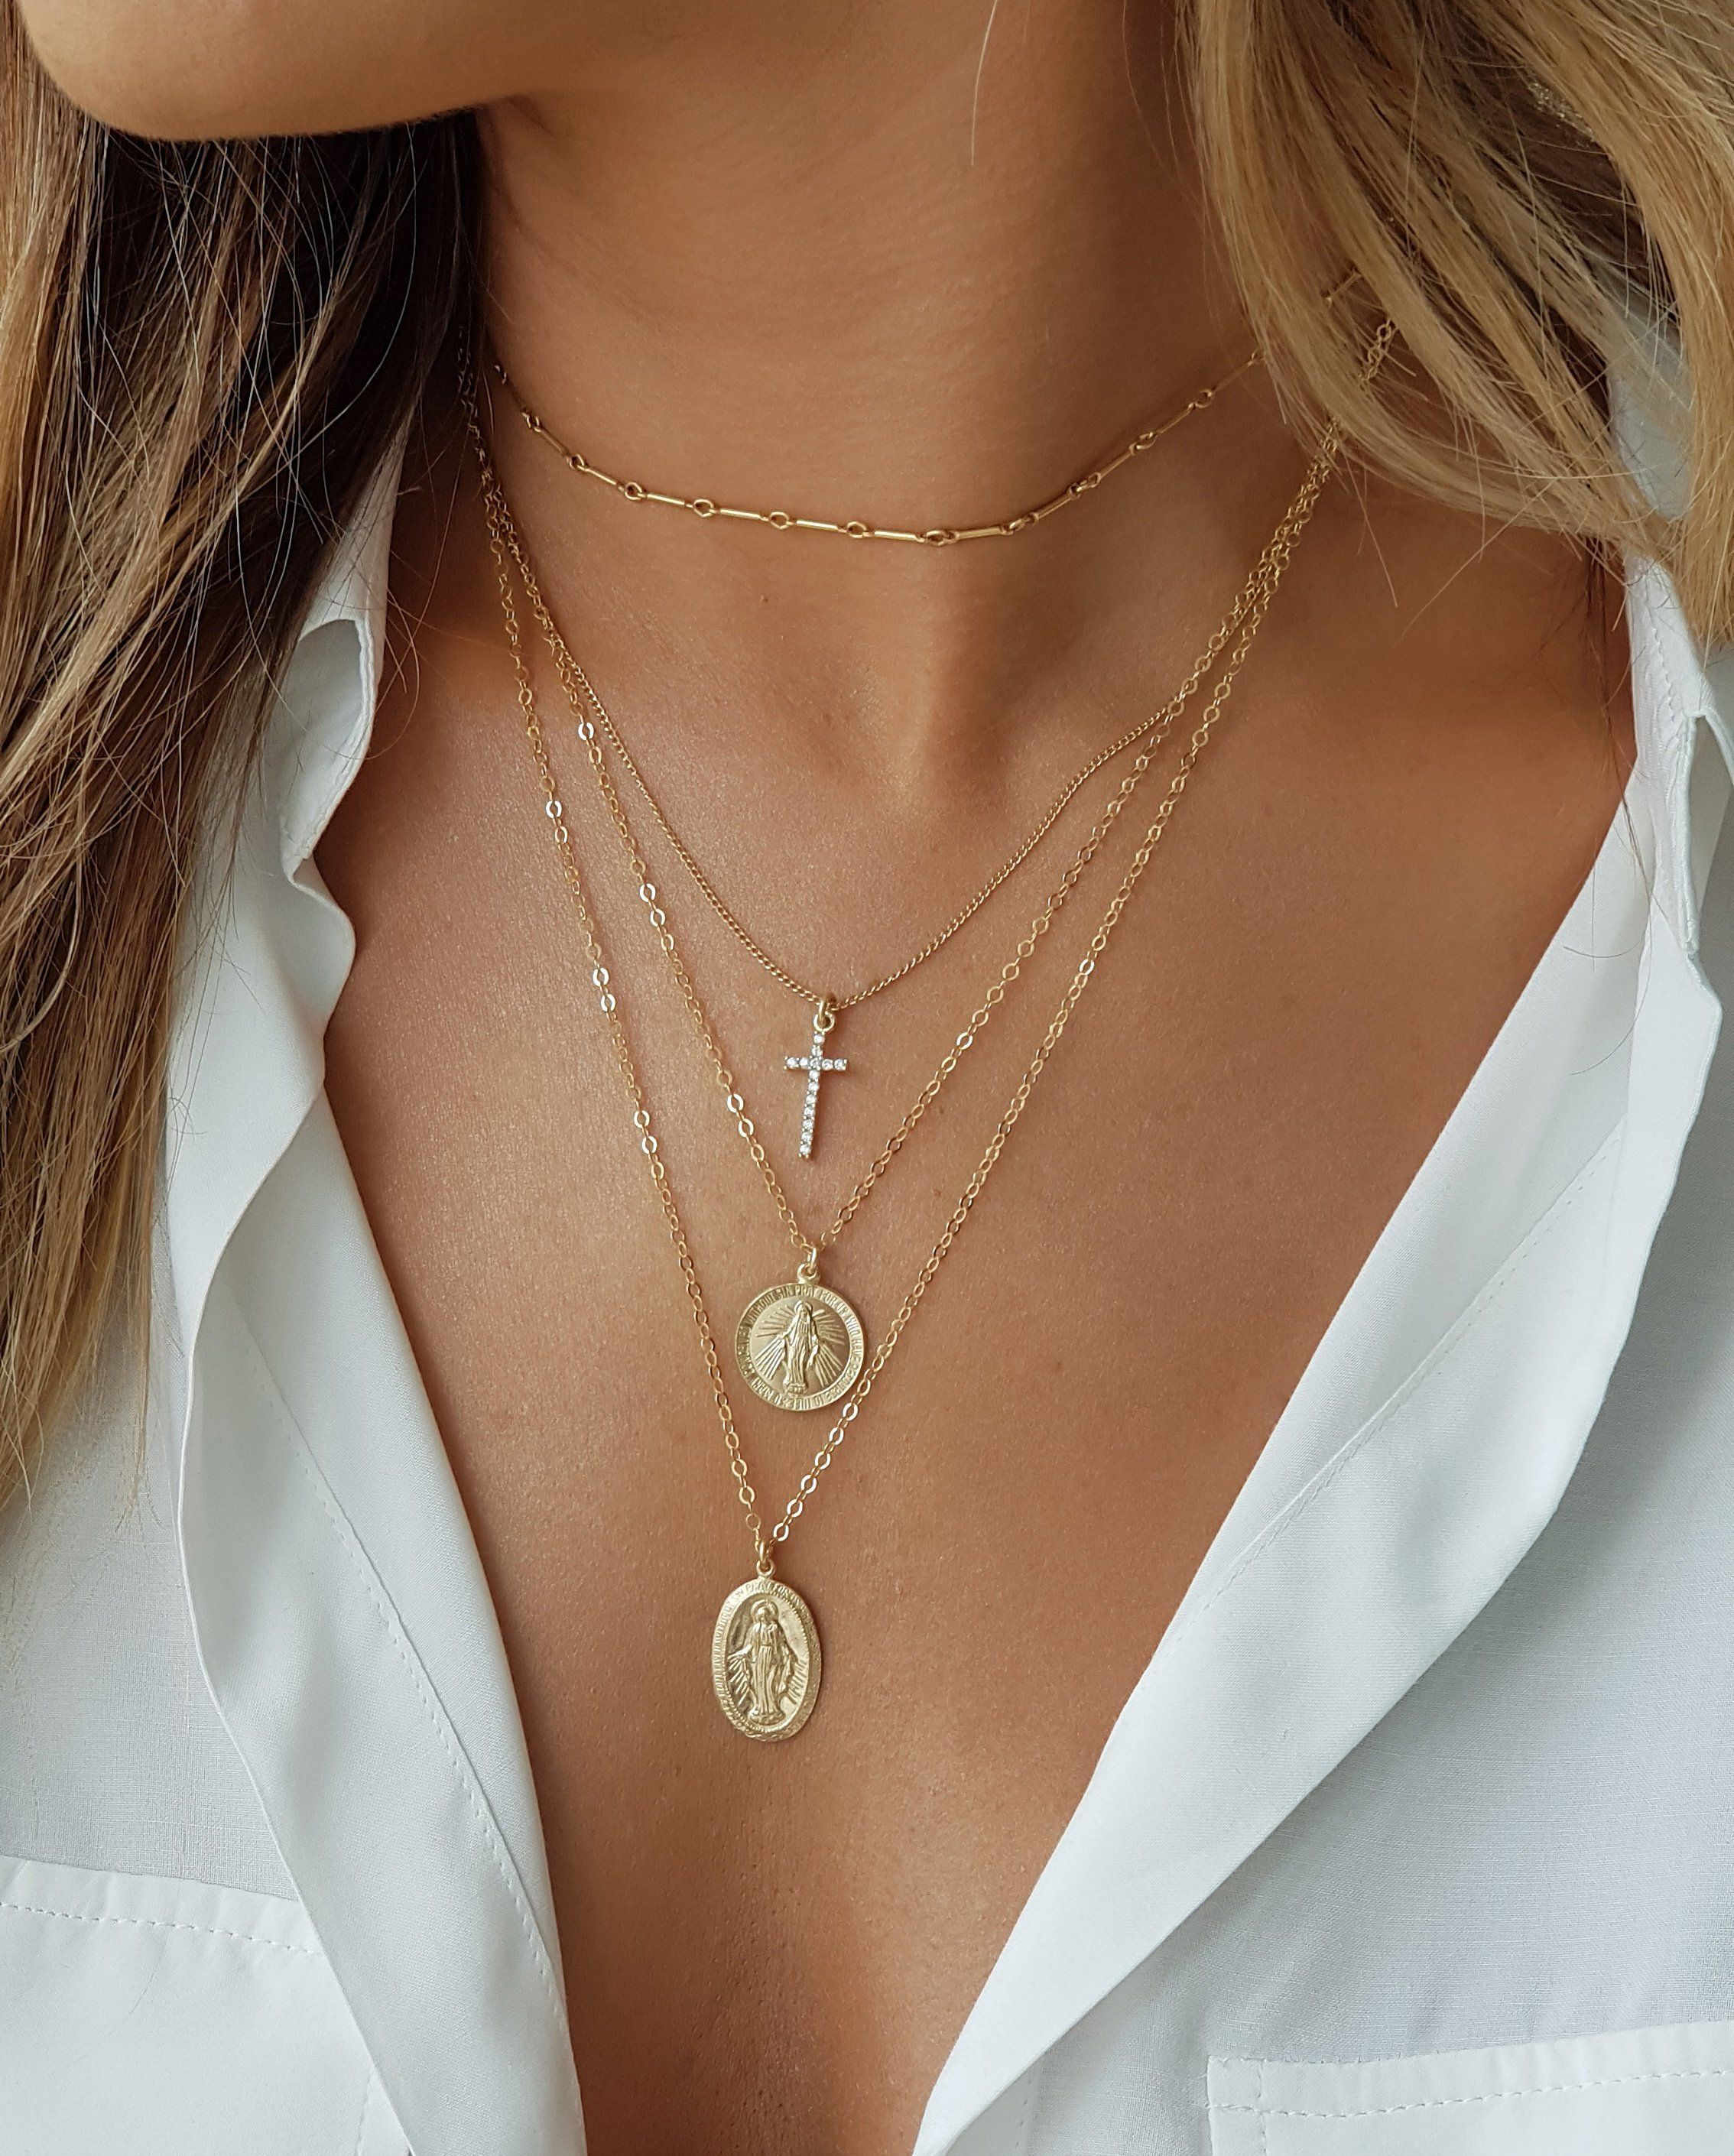 898fe36c6f89 Gold Coin Necklace Virgin Mary Coin Necklace in 2019 | Necklaces ...